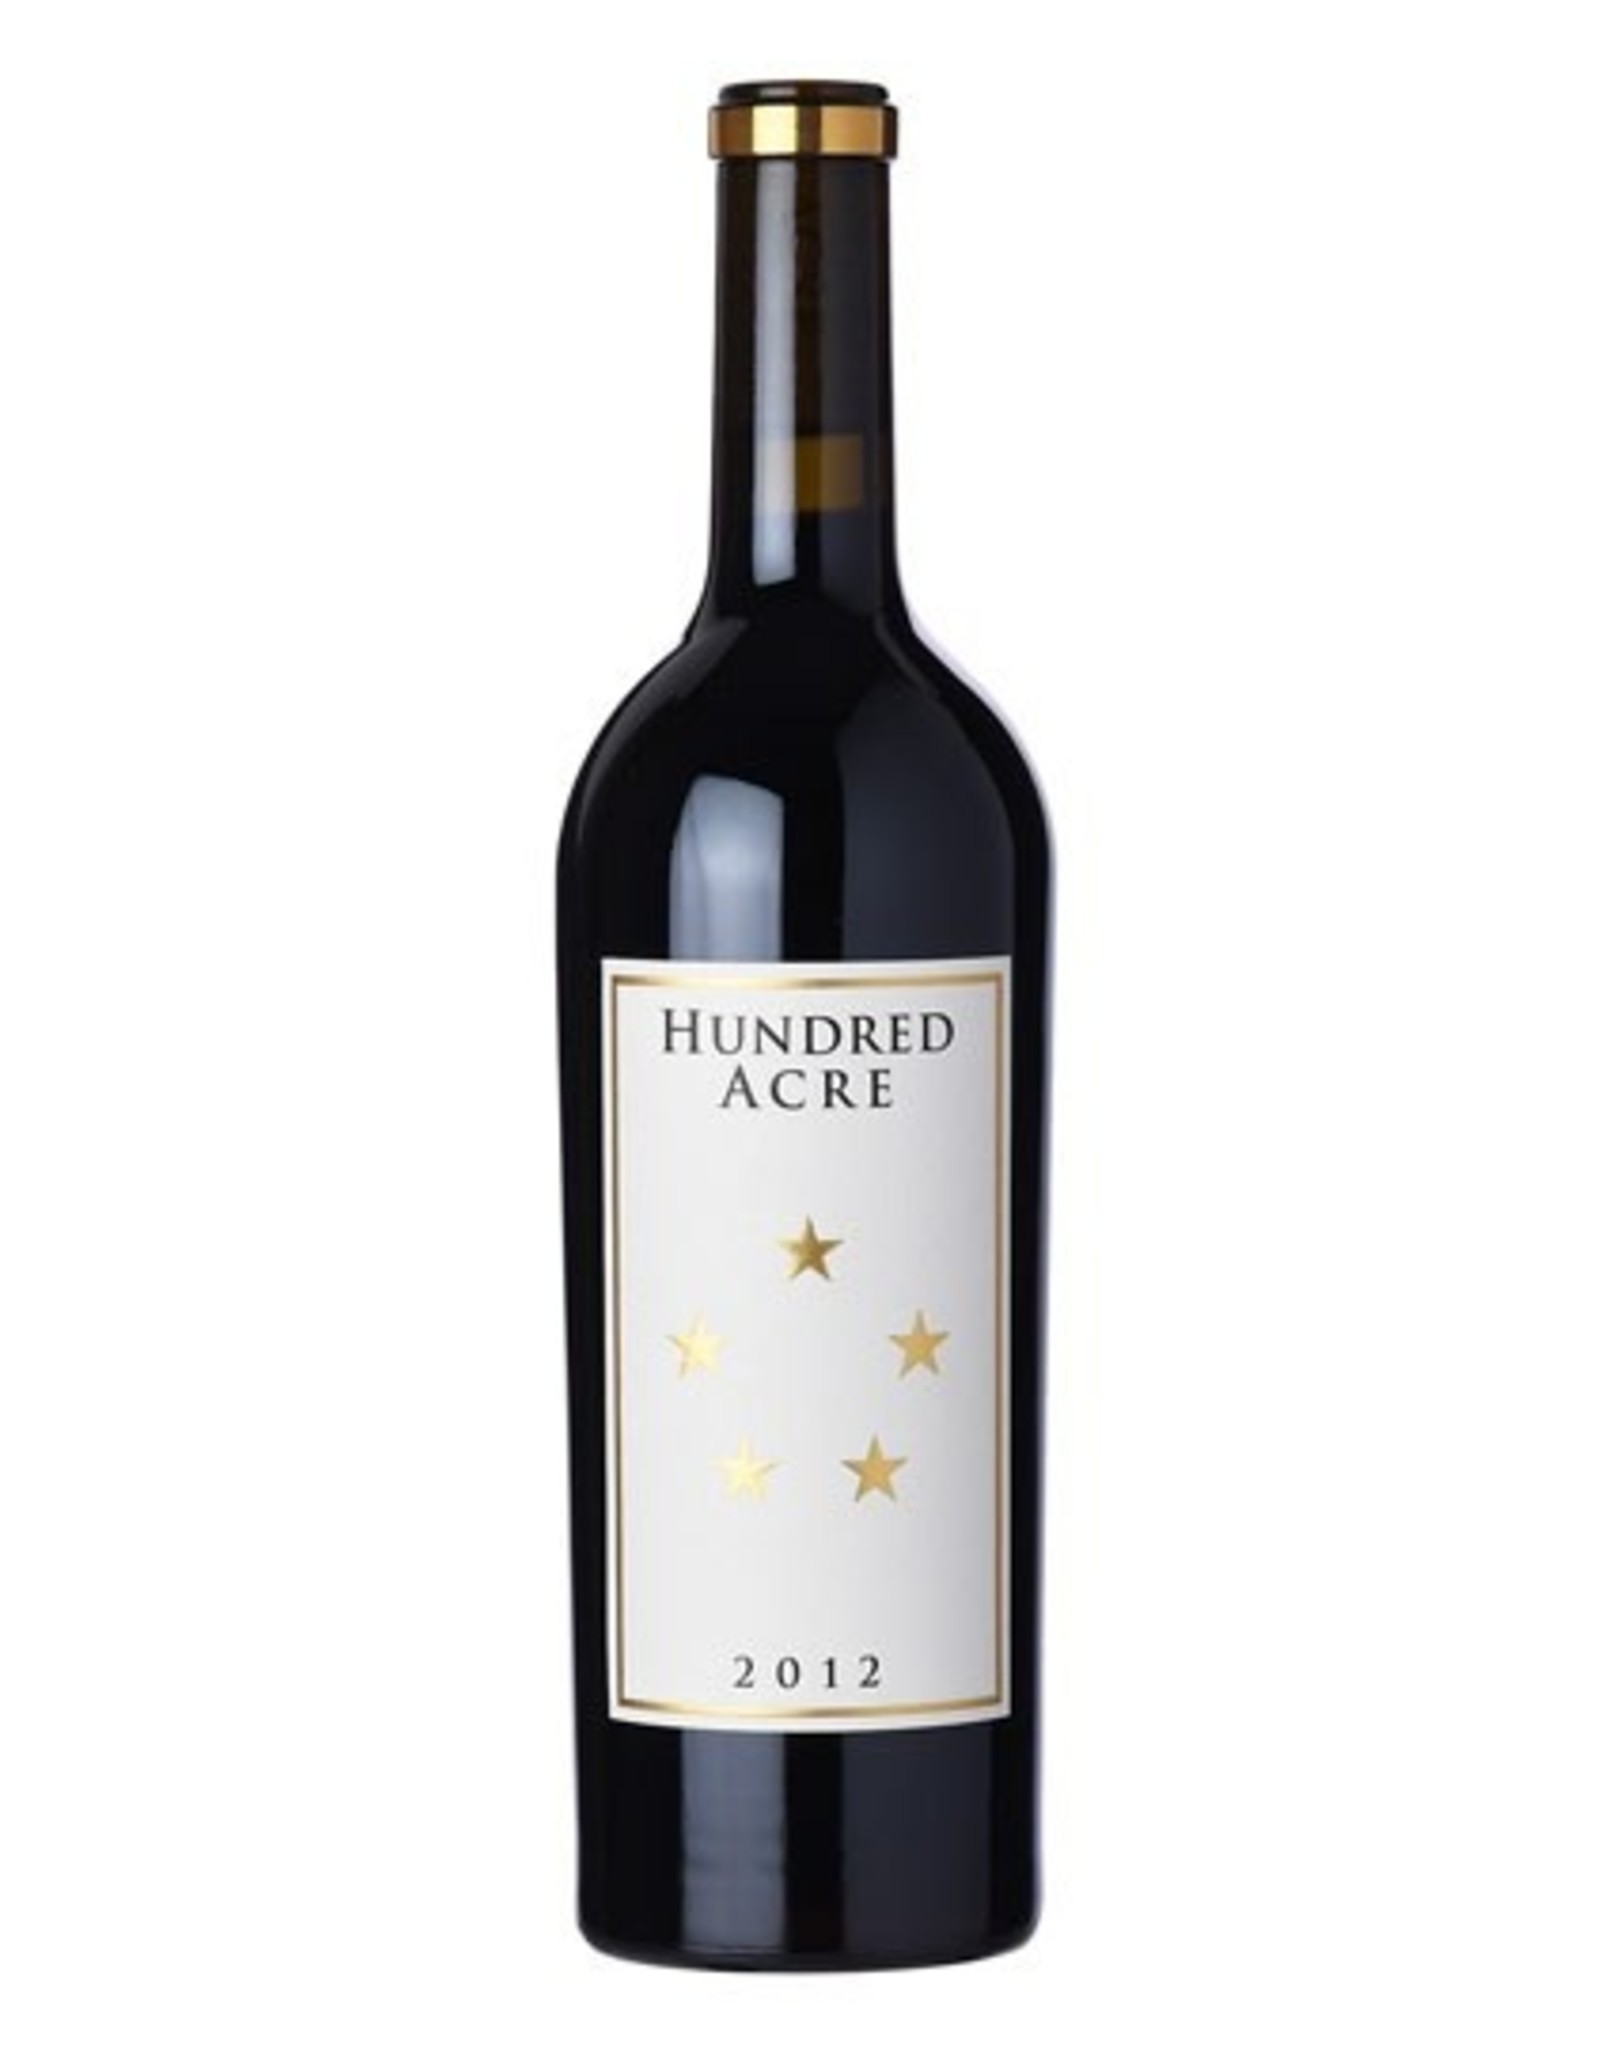 Red Wine 2012, Hundred Acre, Cabernet Sauvignon, Ark Vineyard, St. Helena, California, 15.5% Alc, CT96, RP100